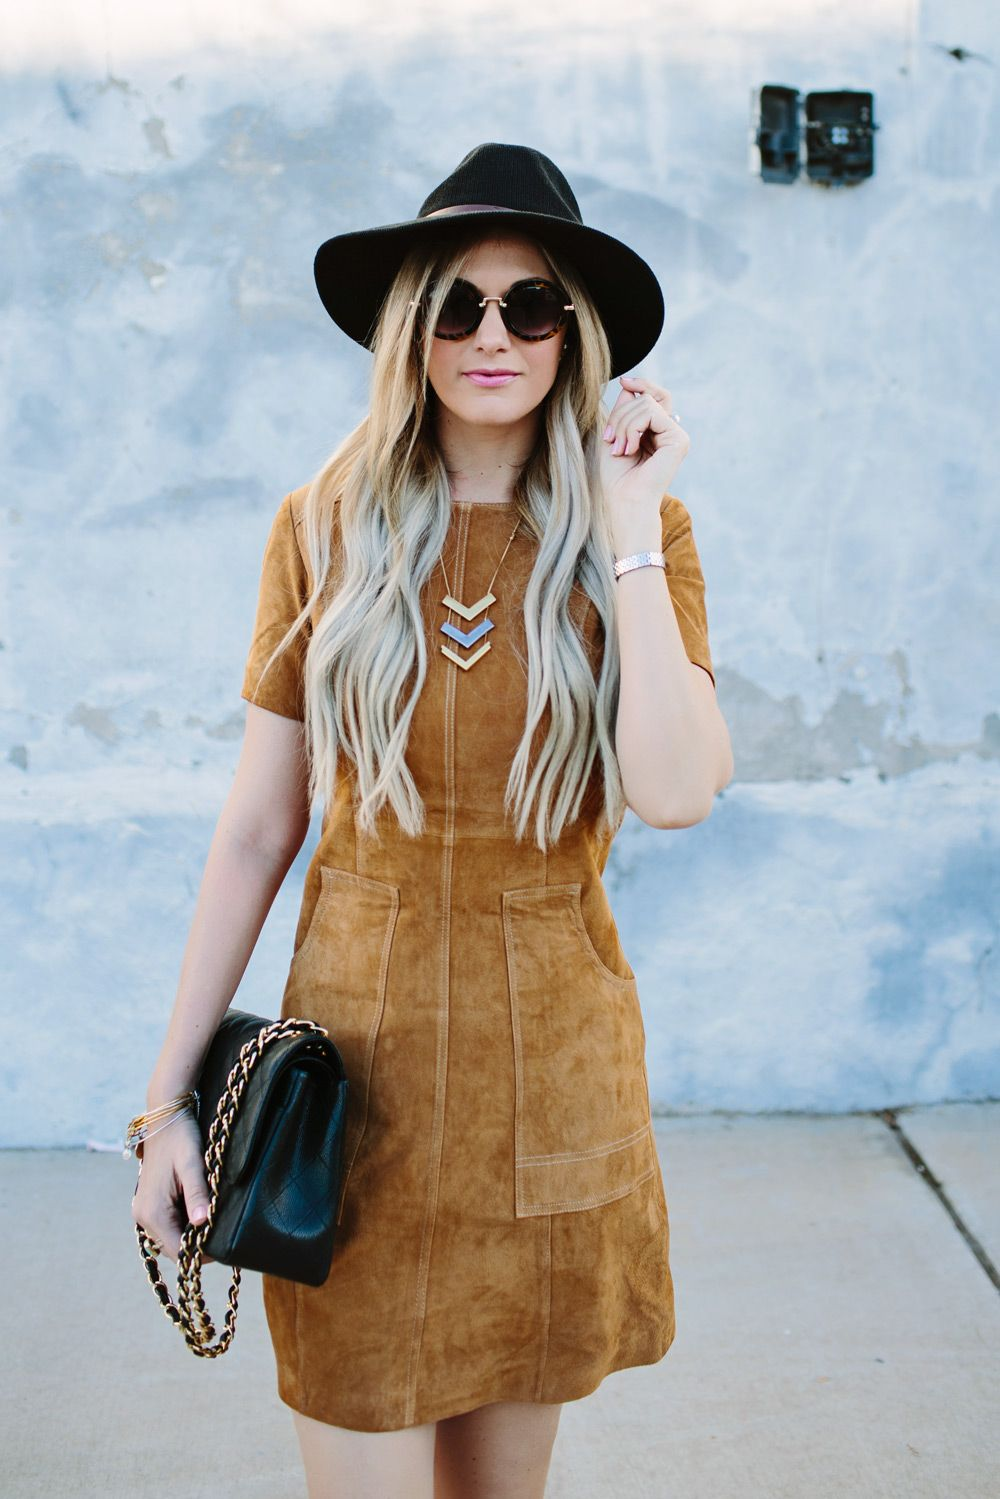 42+ Suede dress outfits ideas in 2021